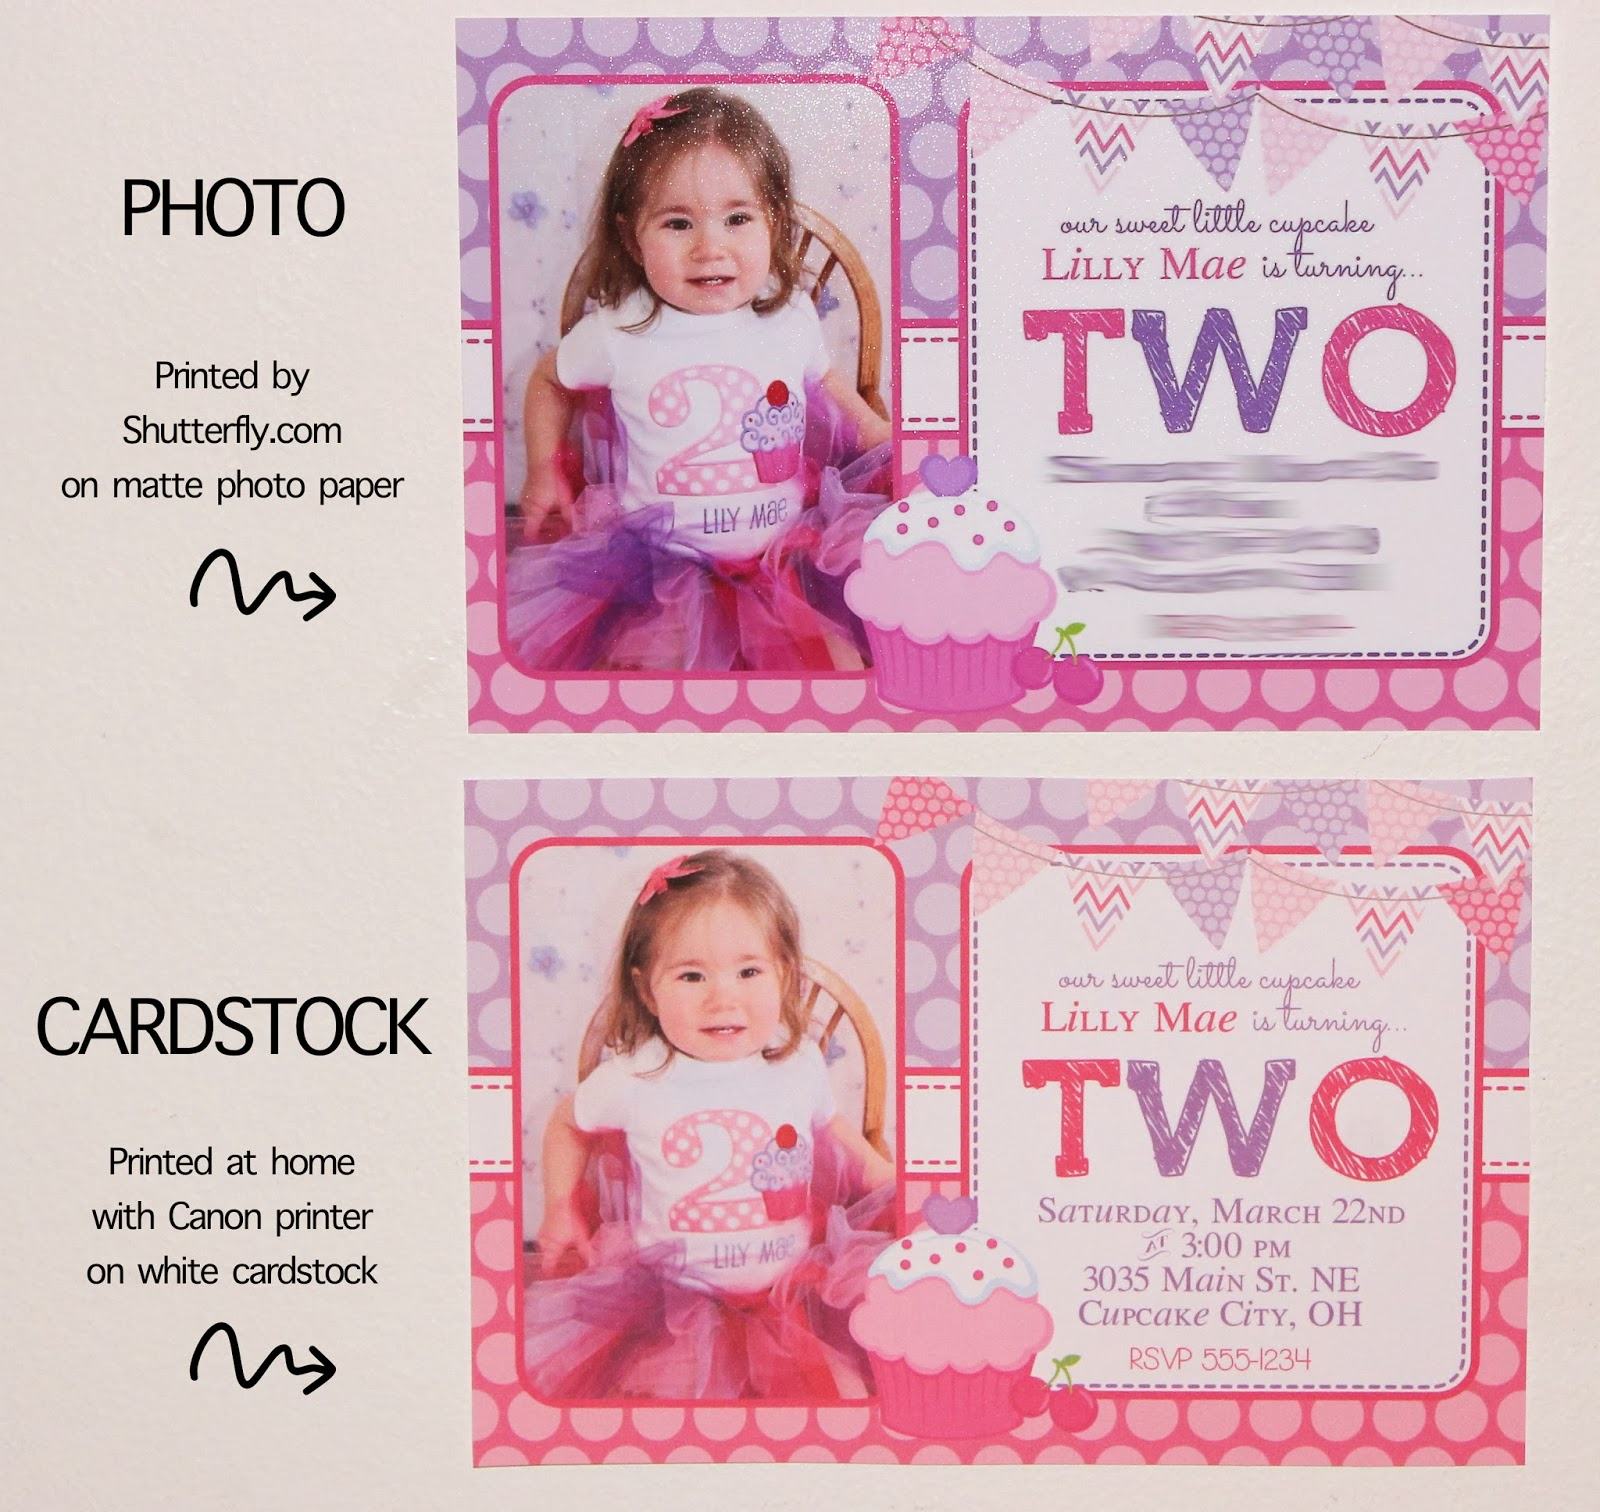 graphic relating to Printable Cardstock Invitations named Printable Invites: Cardstock or Image Paper? - hilltop